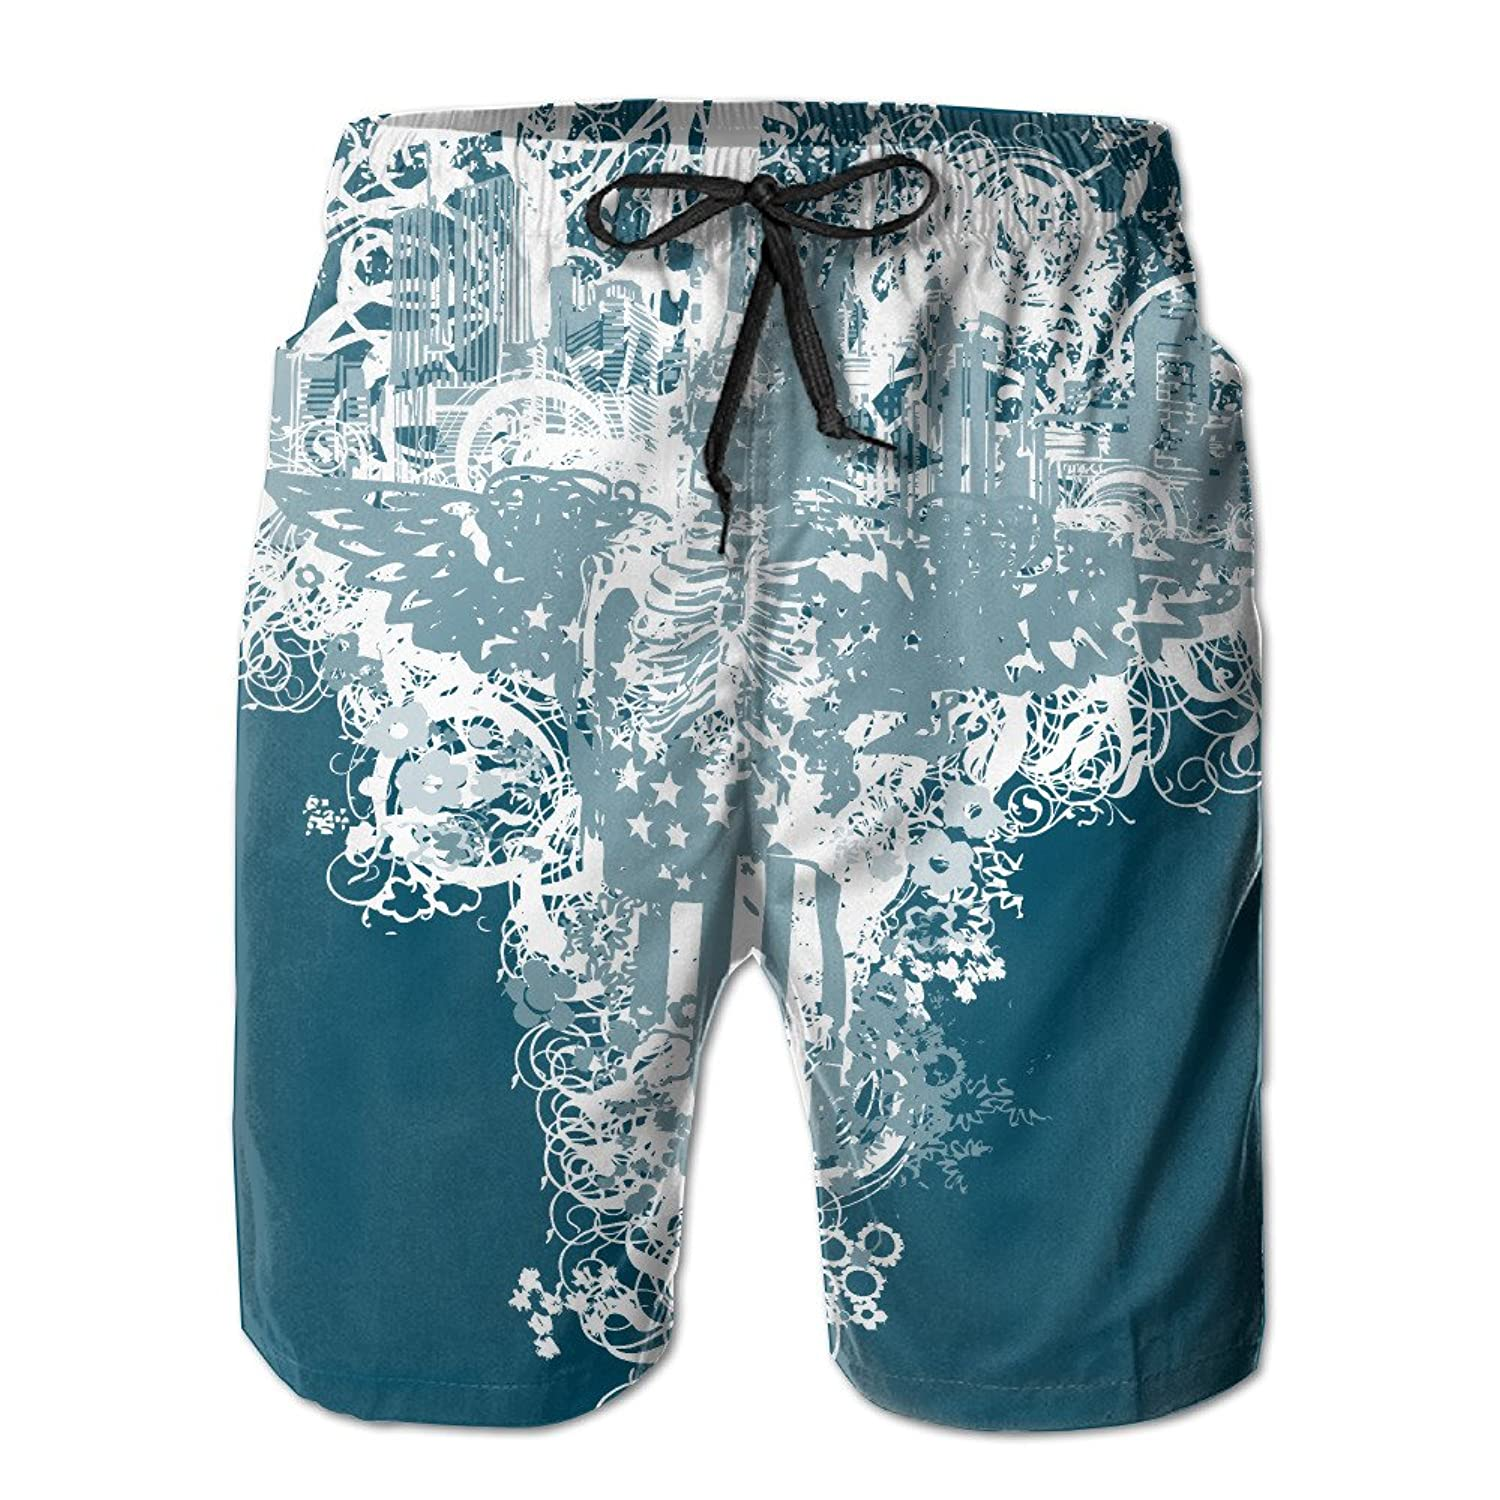 0282020dd7 outlet Skulls American Flag Newest Men s Workout swim Trunks Summer Quick  Dry Board Shorts With Pockets Home